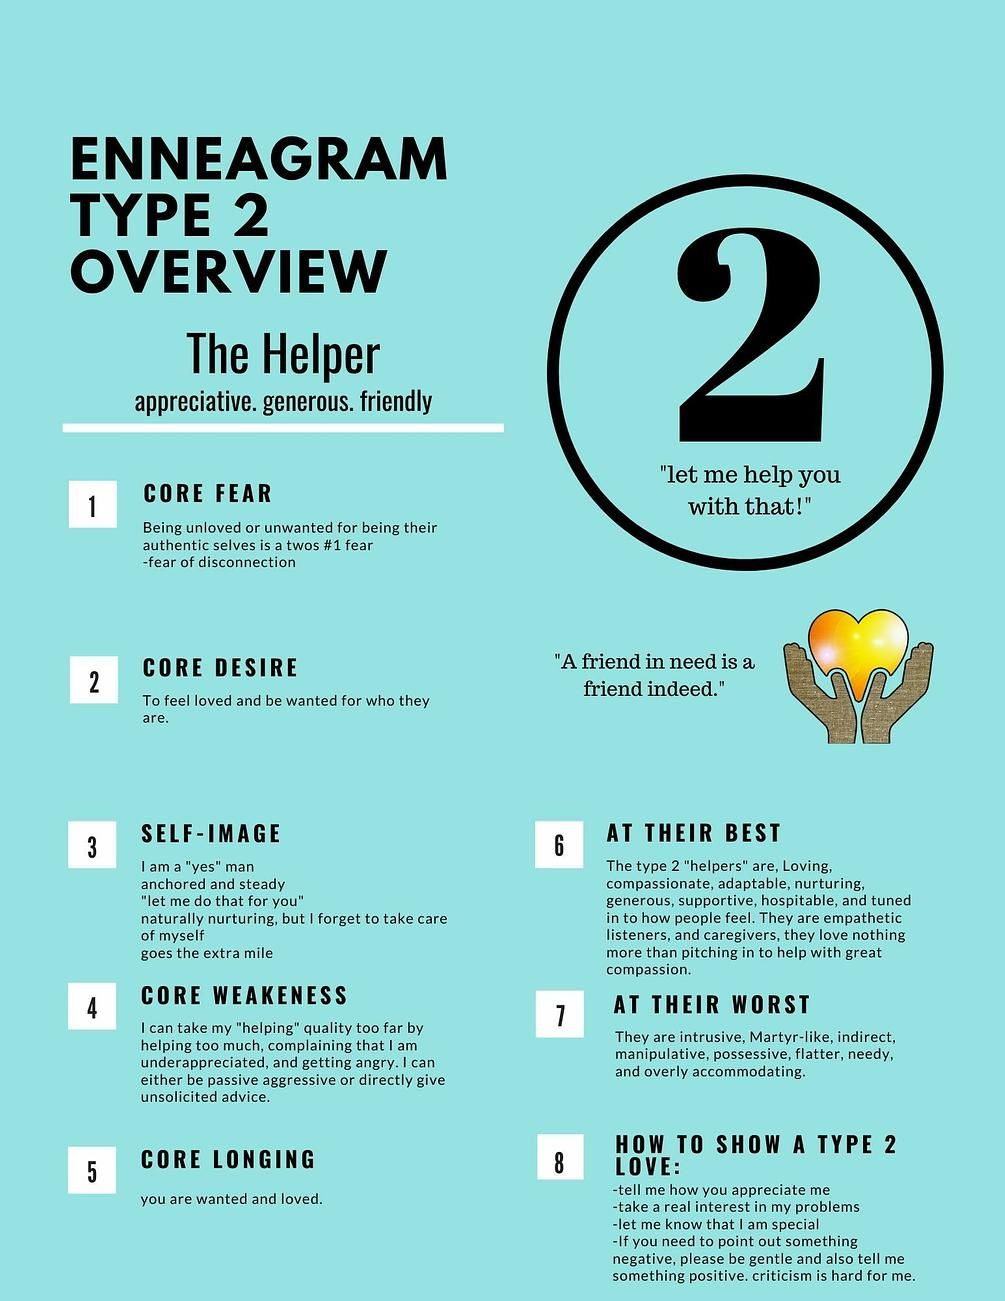 Enneagram Type 2 Overview